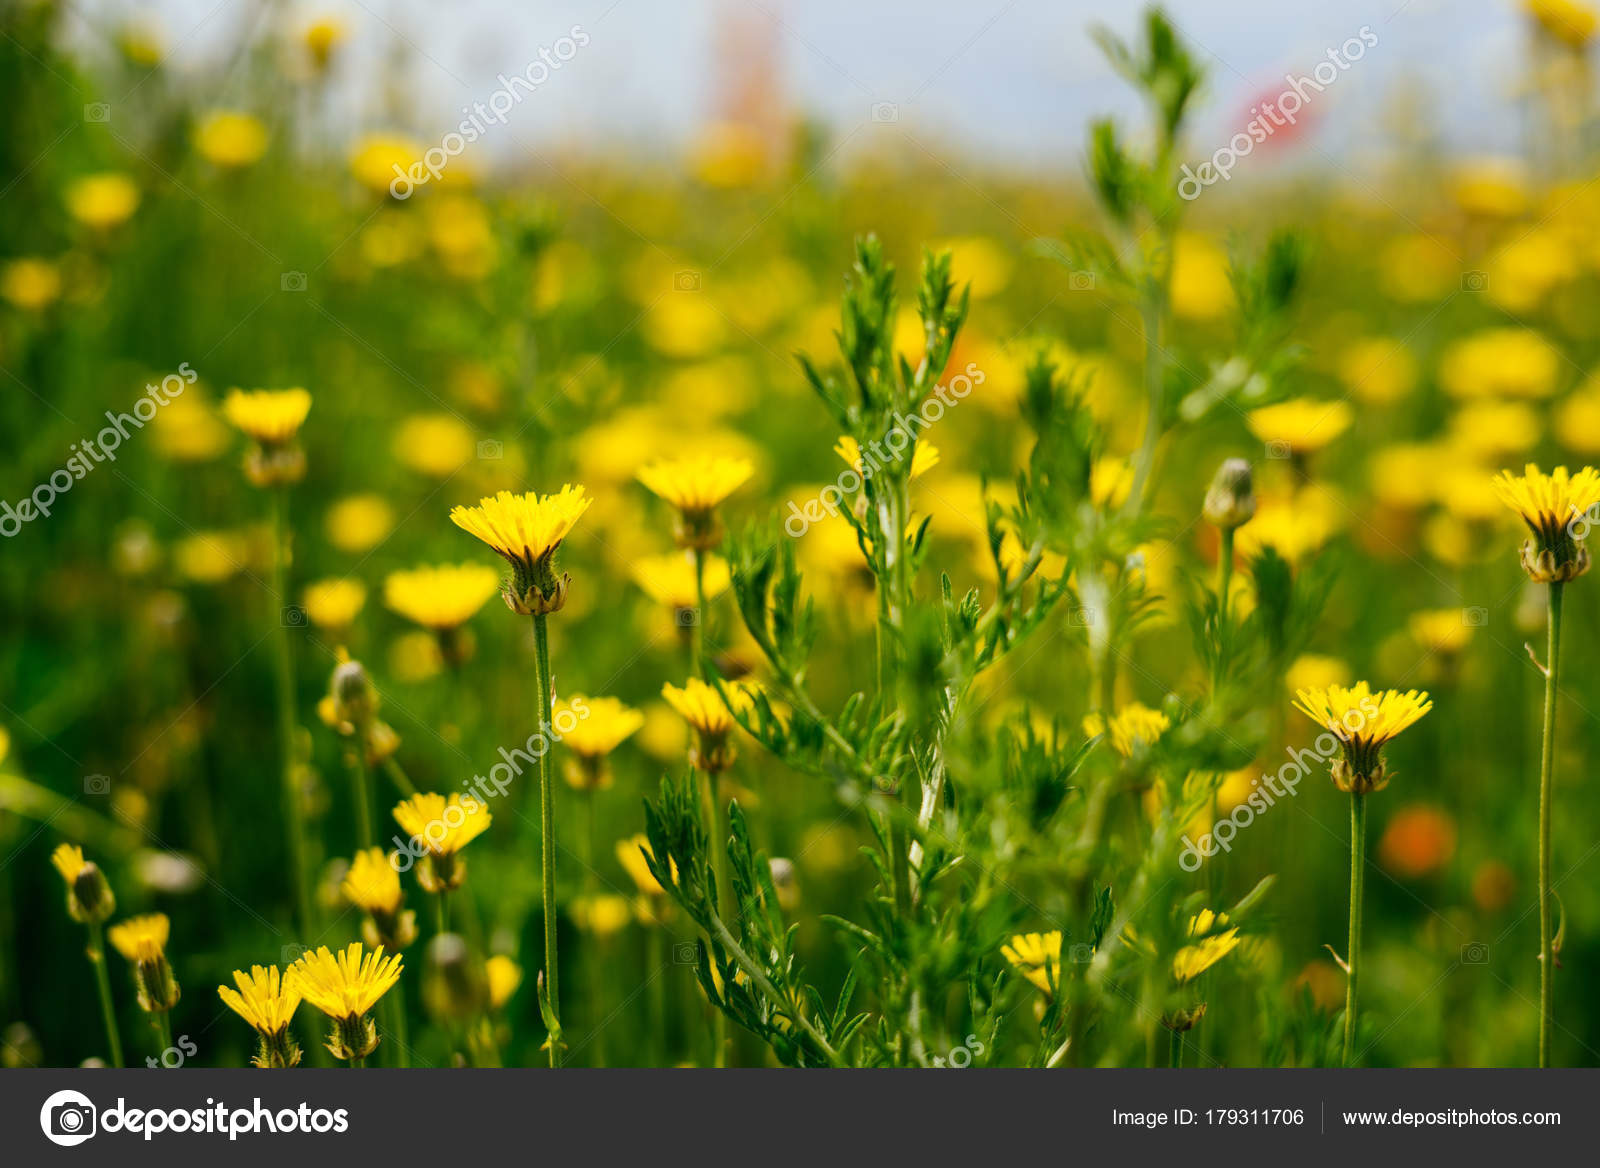 On The Endless Green Field Grow Yellow Fragrant Flowers Stock